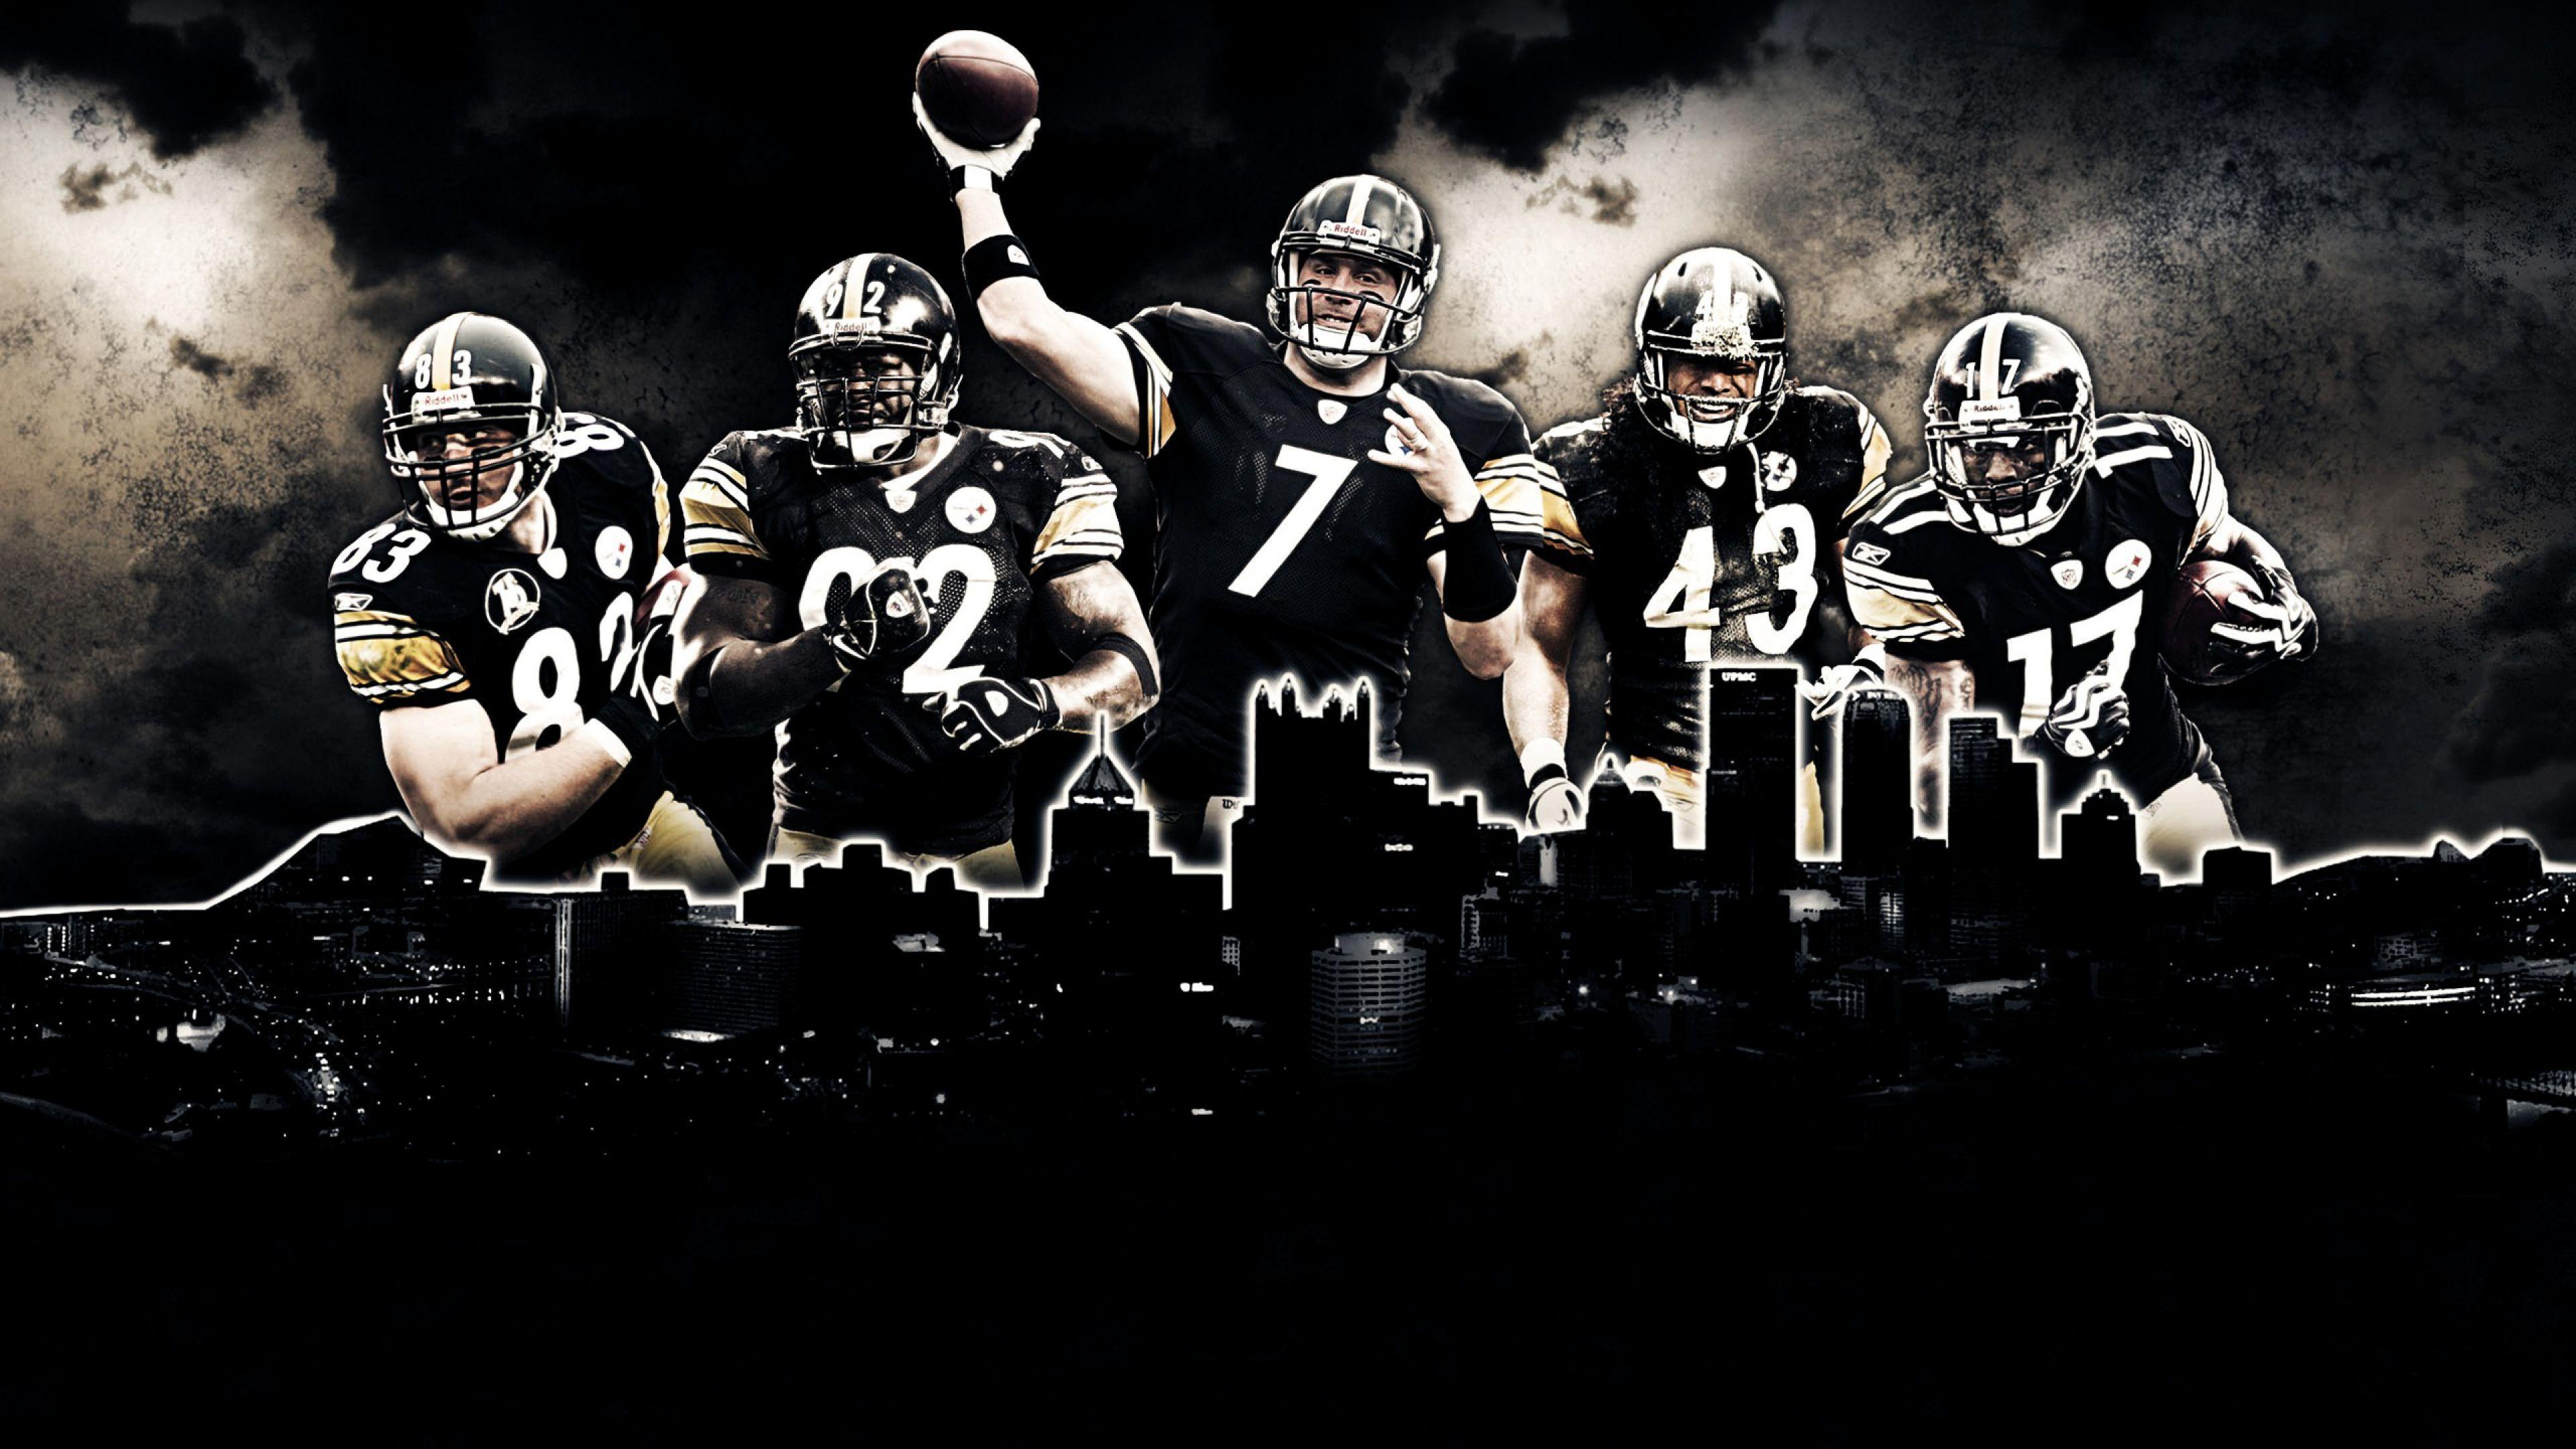 NFL Team Pittsburgh Steelers wallpapers HD 2016 in Football